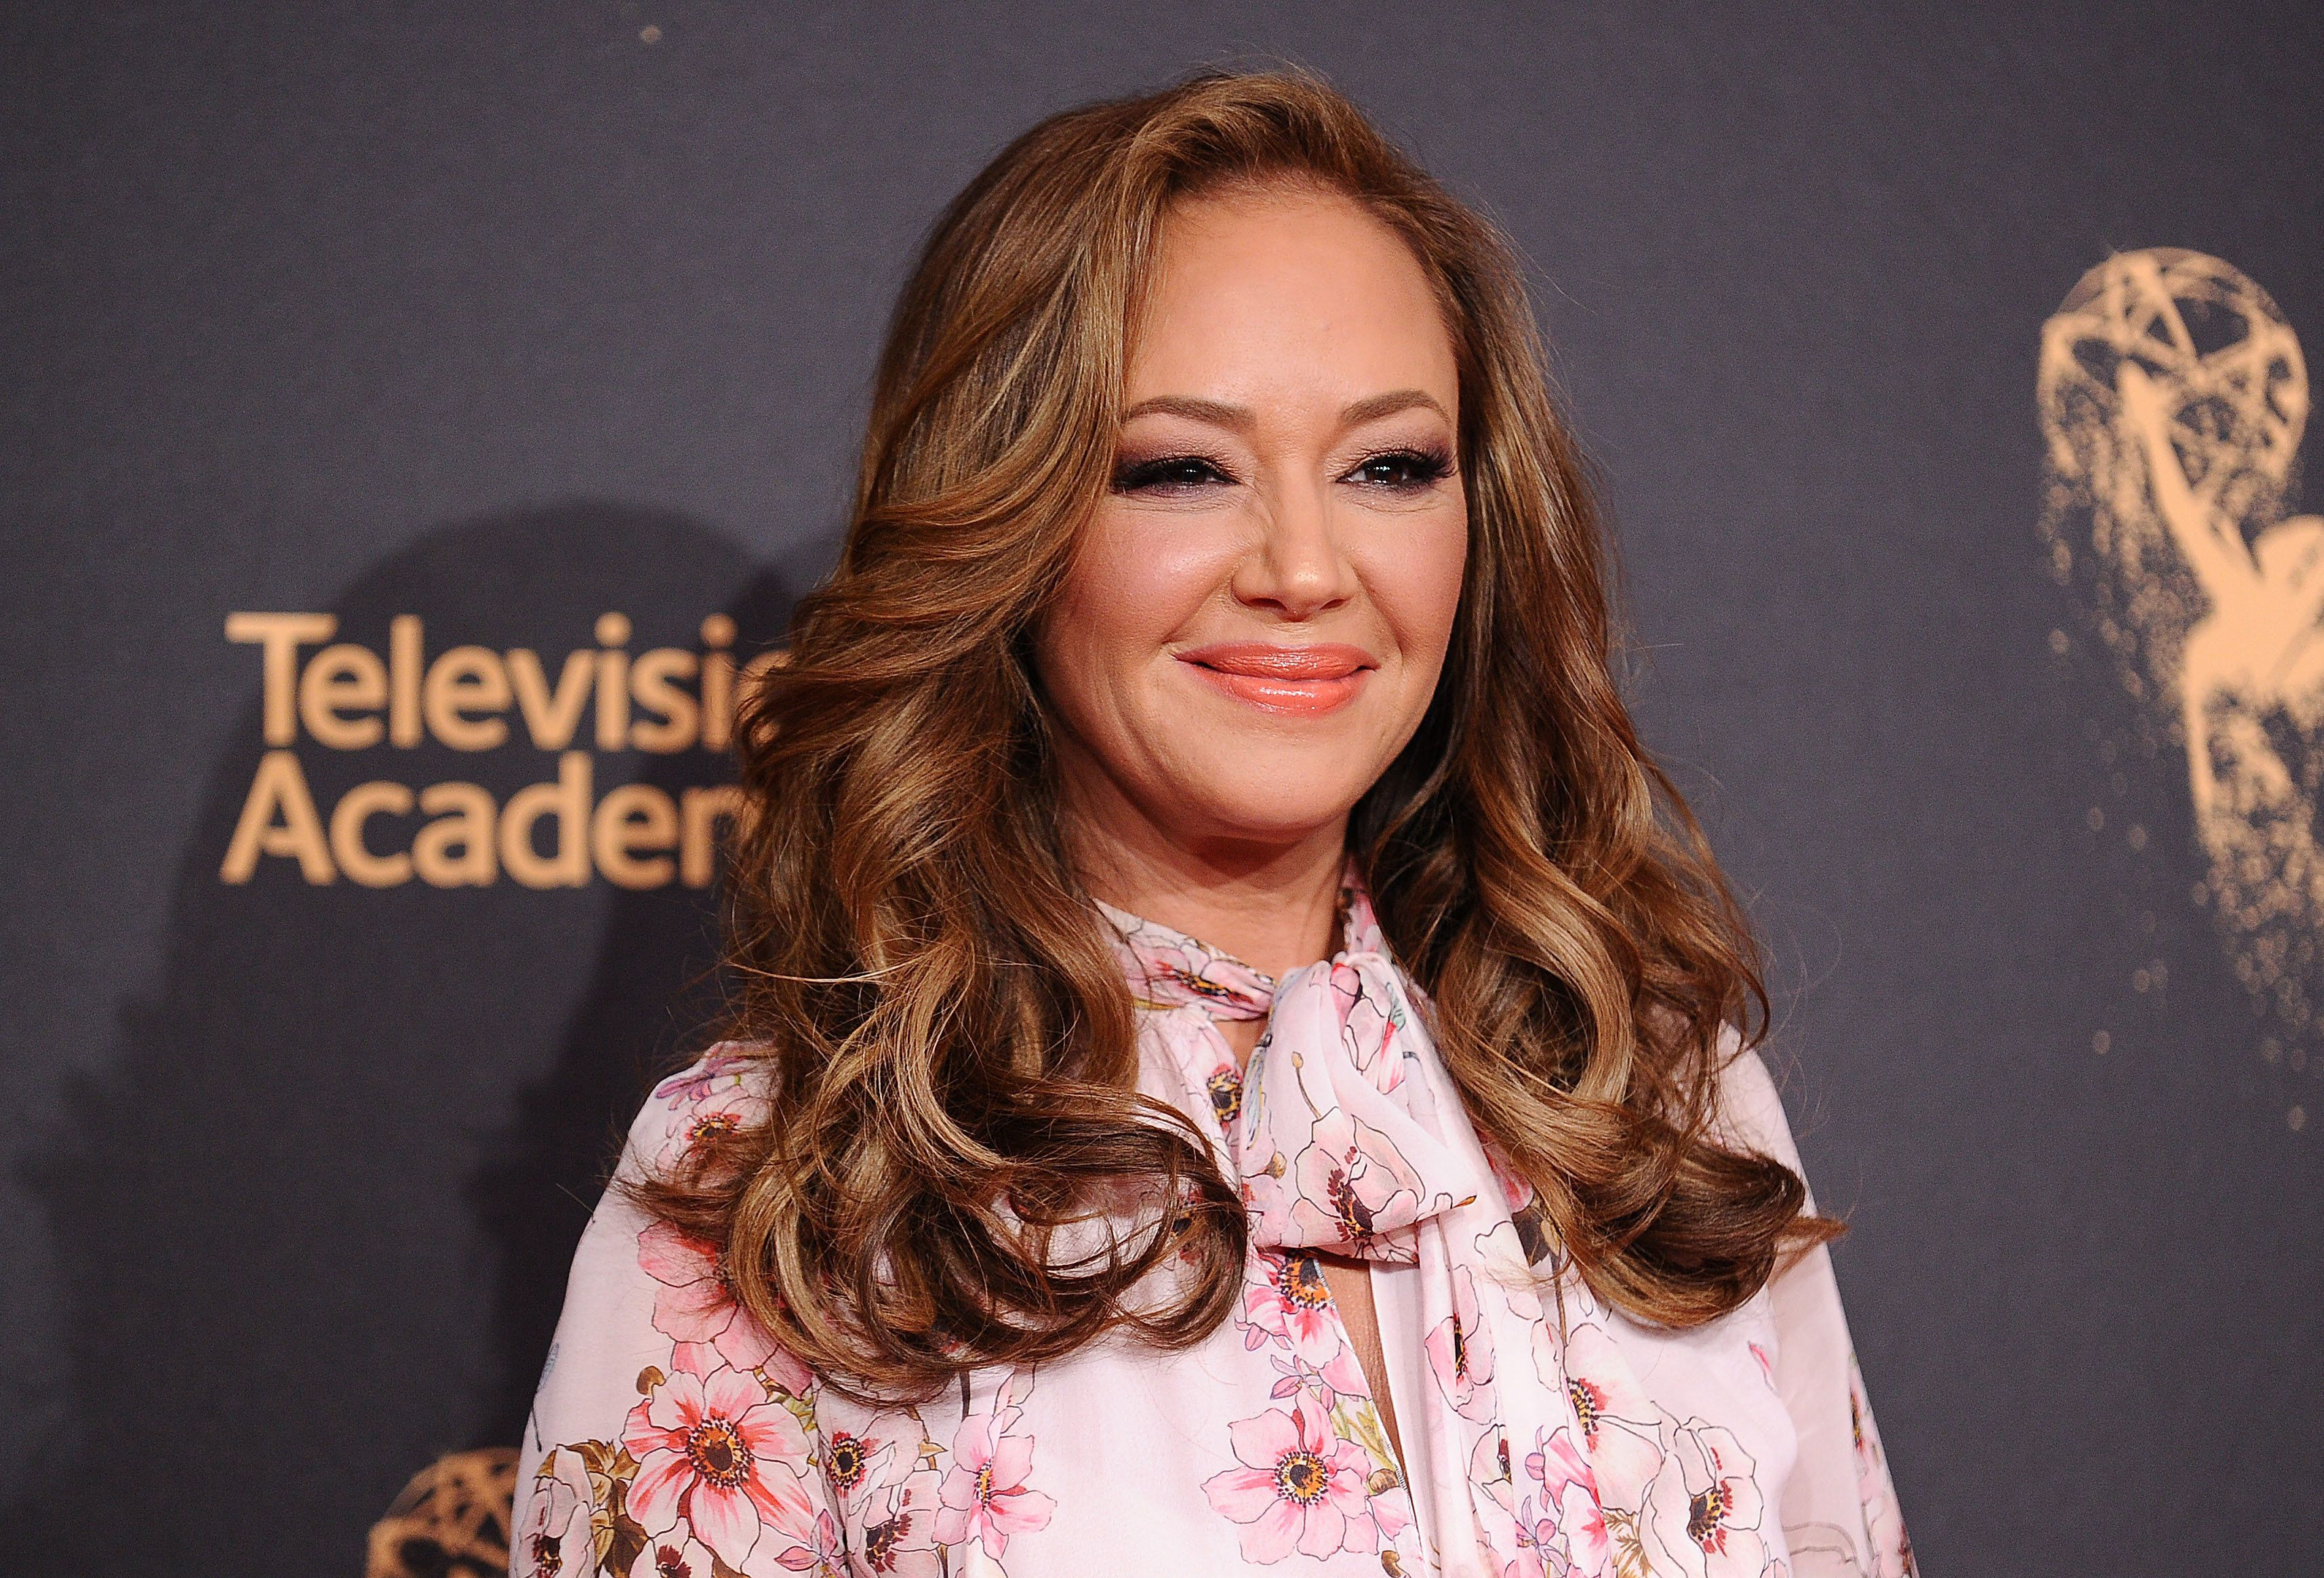 Emmy Winner Leah Remini Jokingly Forgives Mom For Getting Her Into 'A